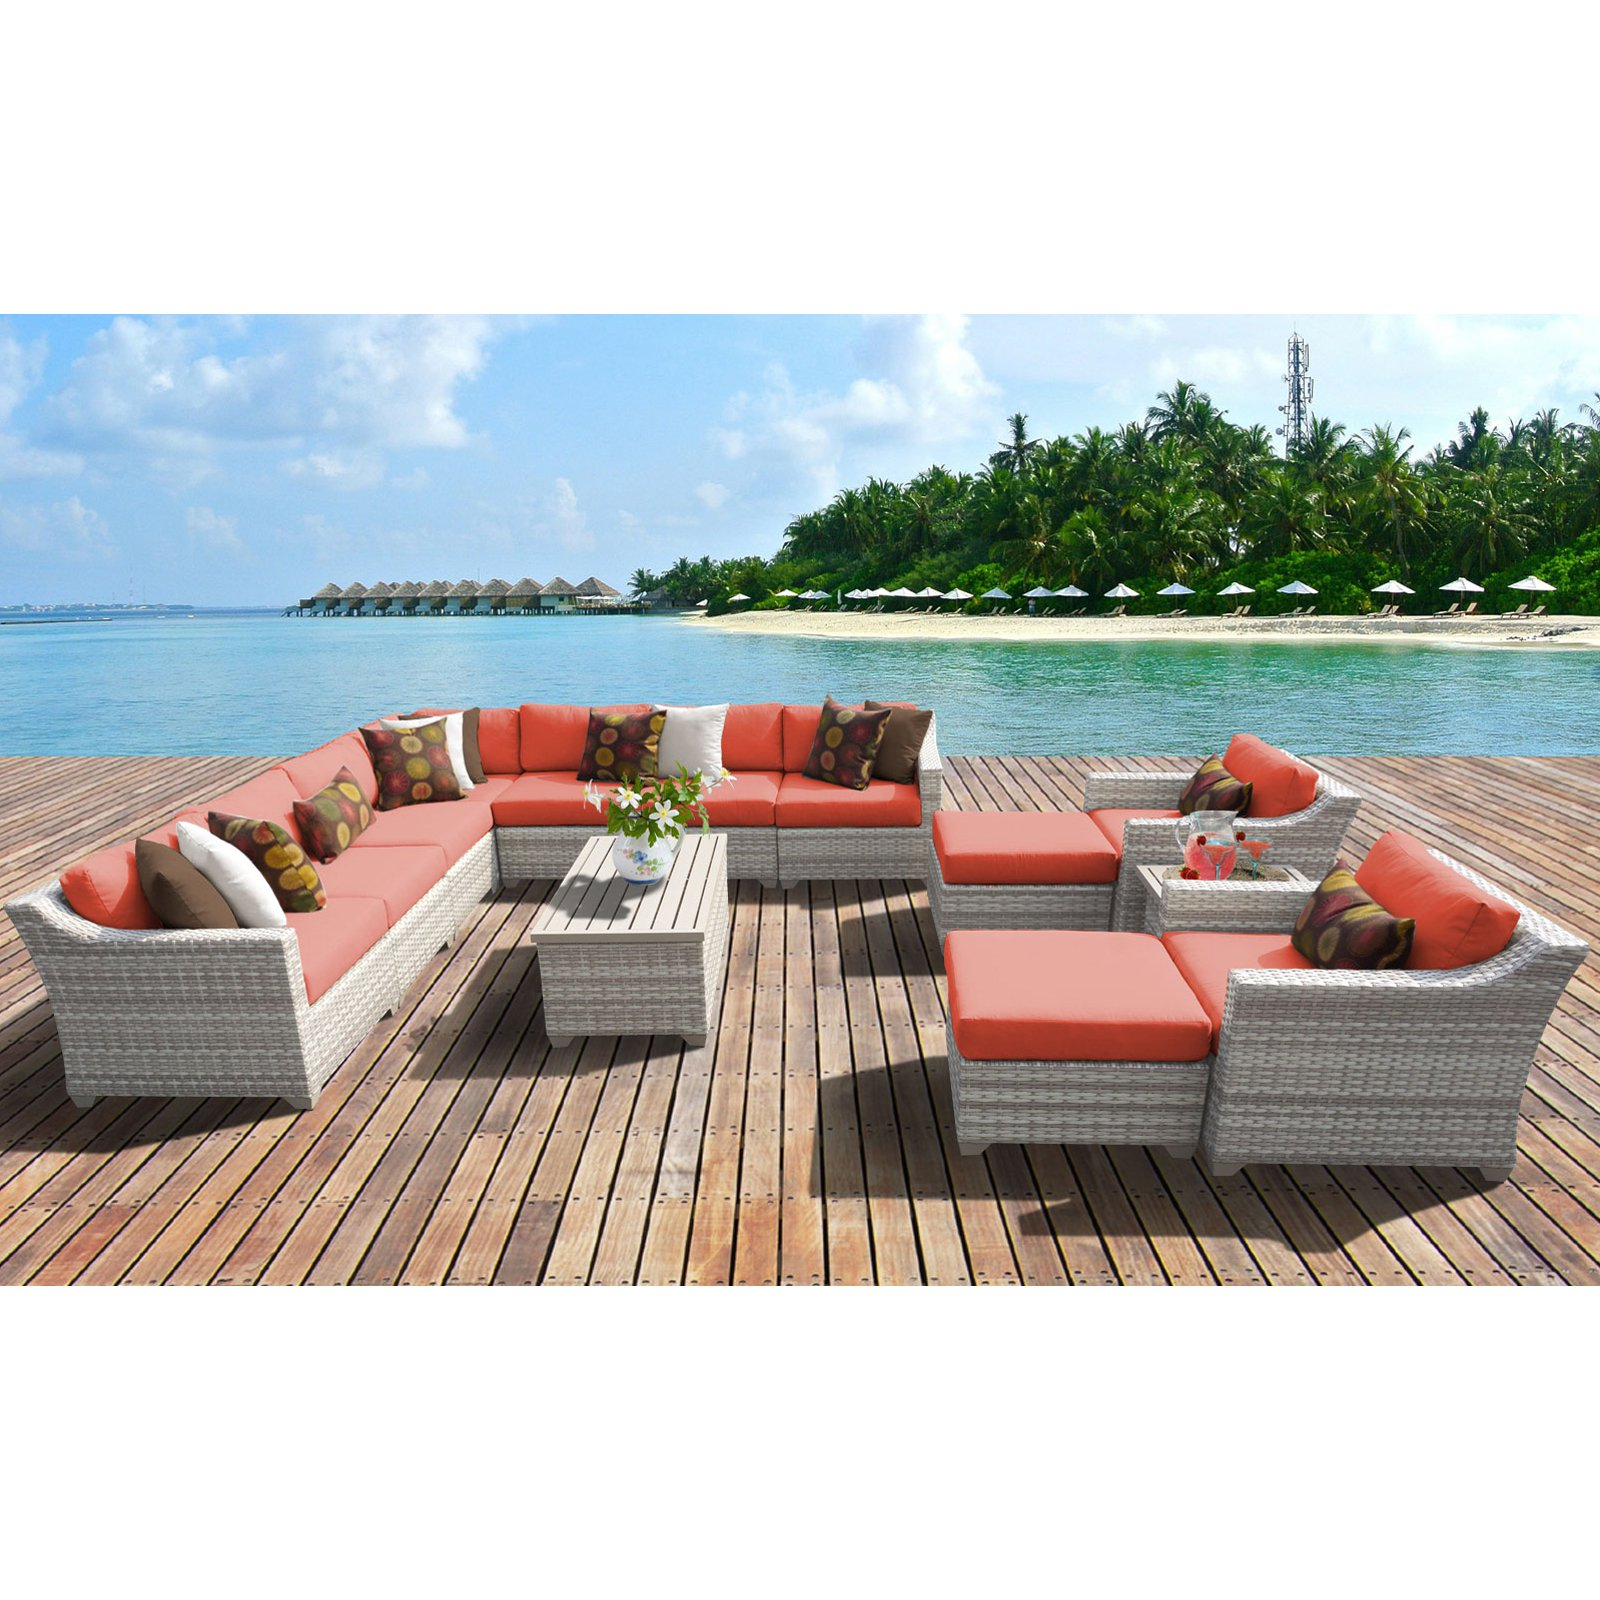 TK Classics Fairmont All-Weather Wicker 13 Piece Patio Conversation Set